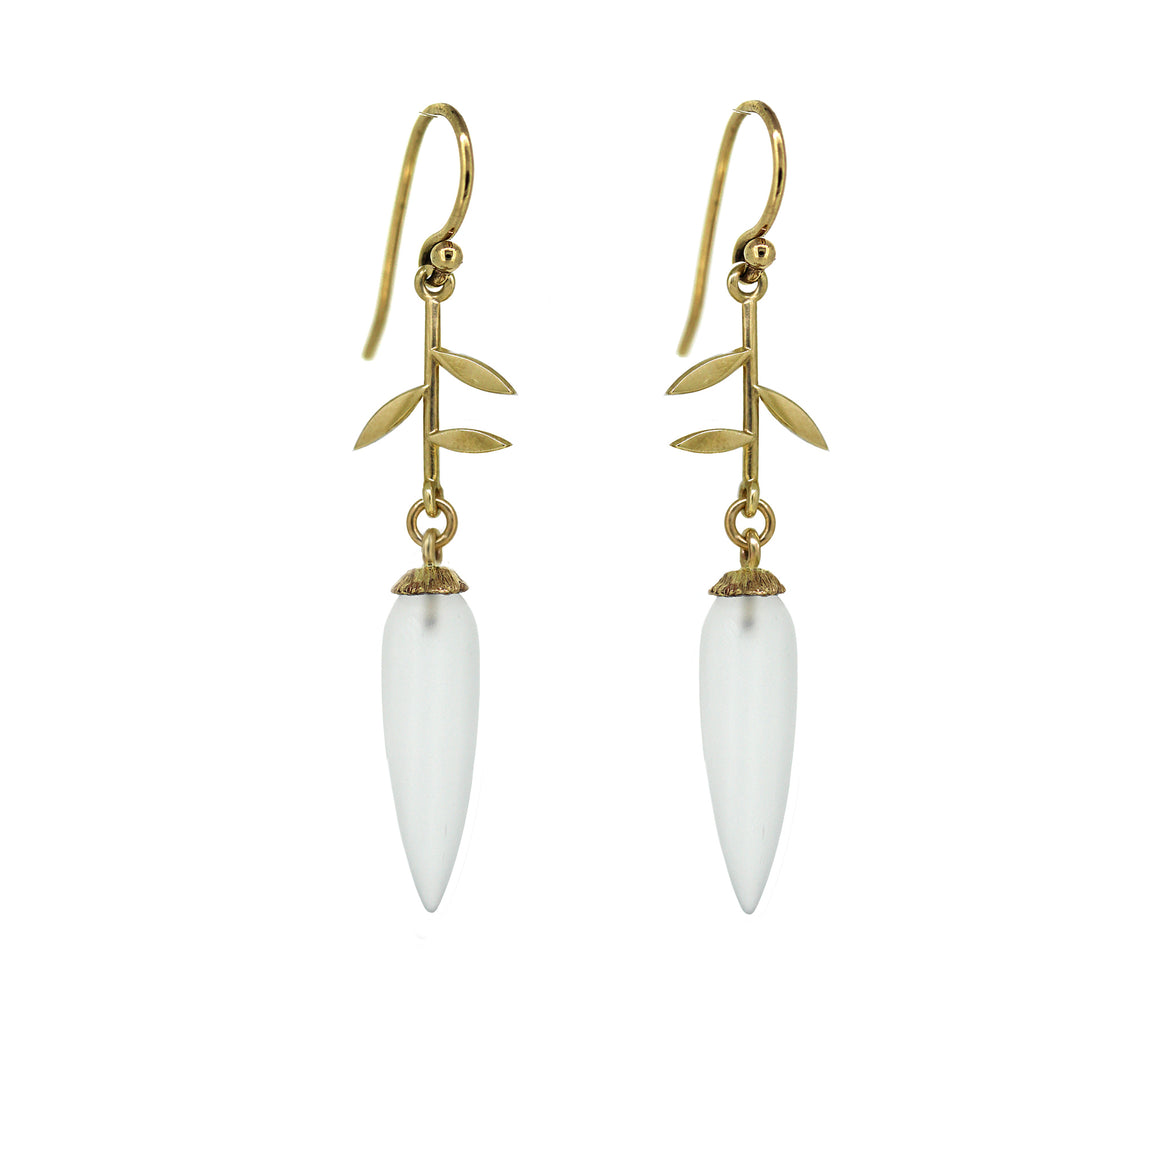 Jardin Quartz drop earrings in gold